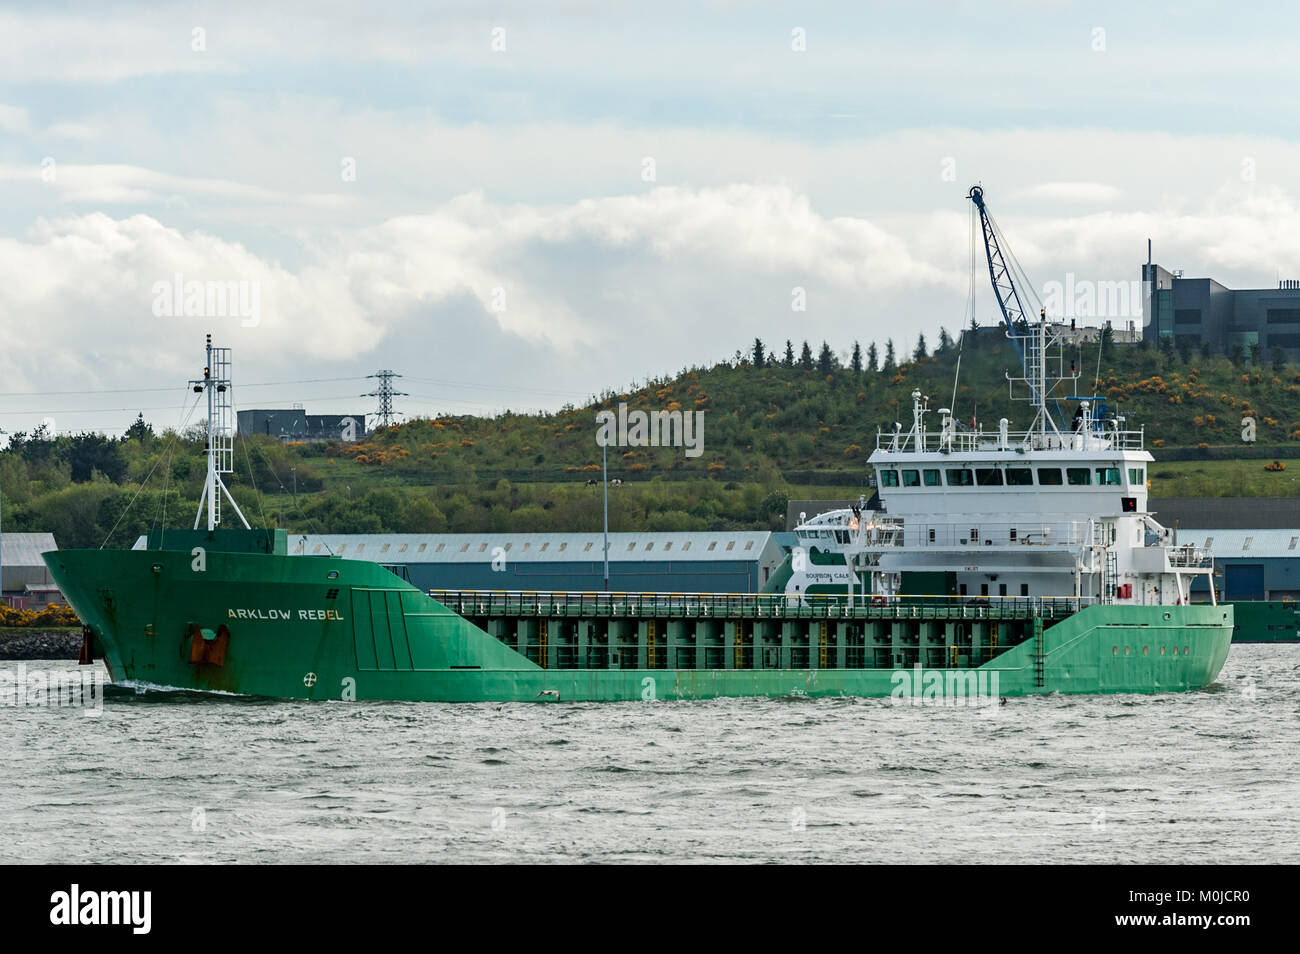 Aklow Rebell, ein General Cargo ship, Segel durch Cobh, County Cork, Irland. Stockbild